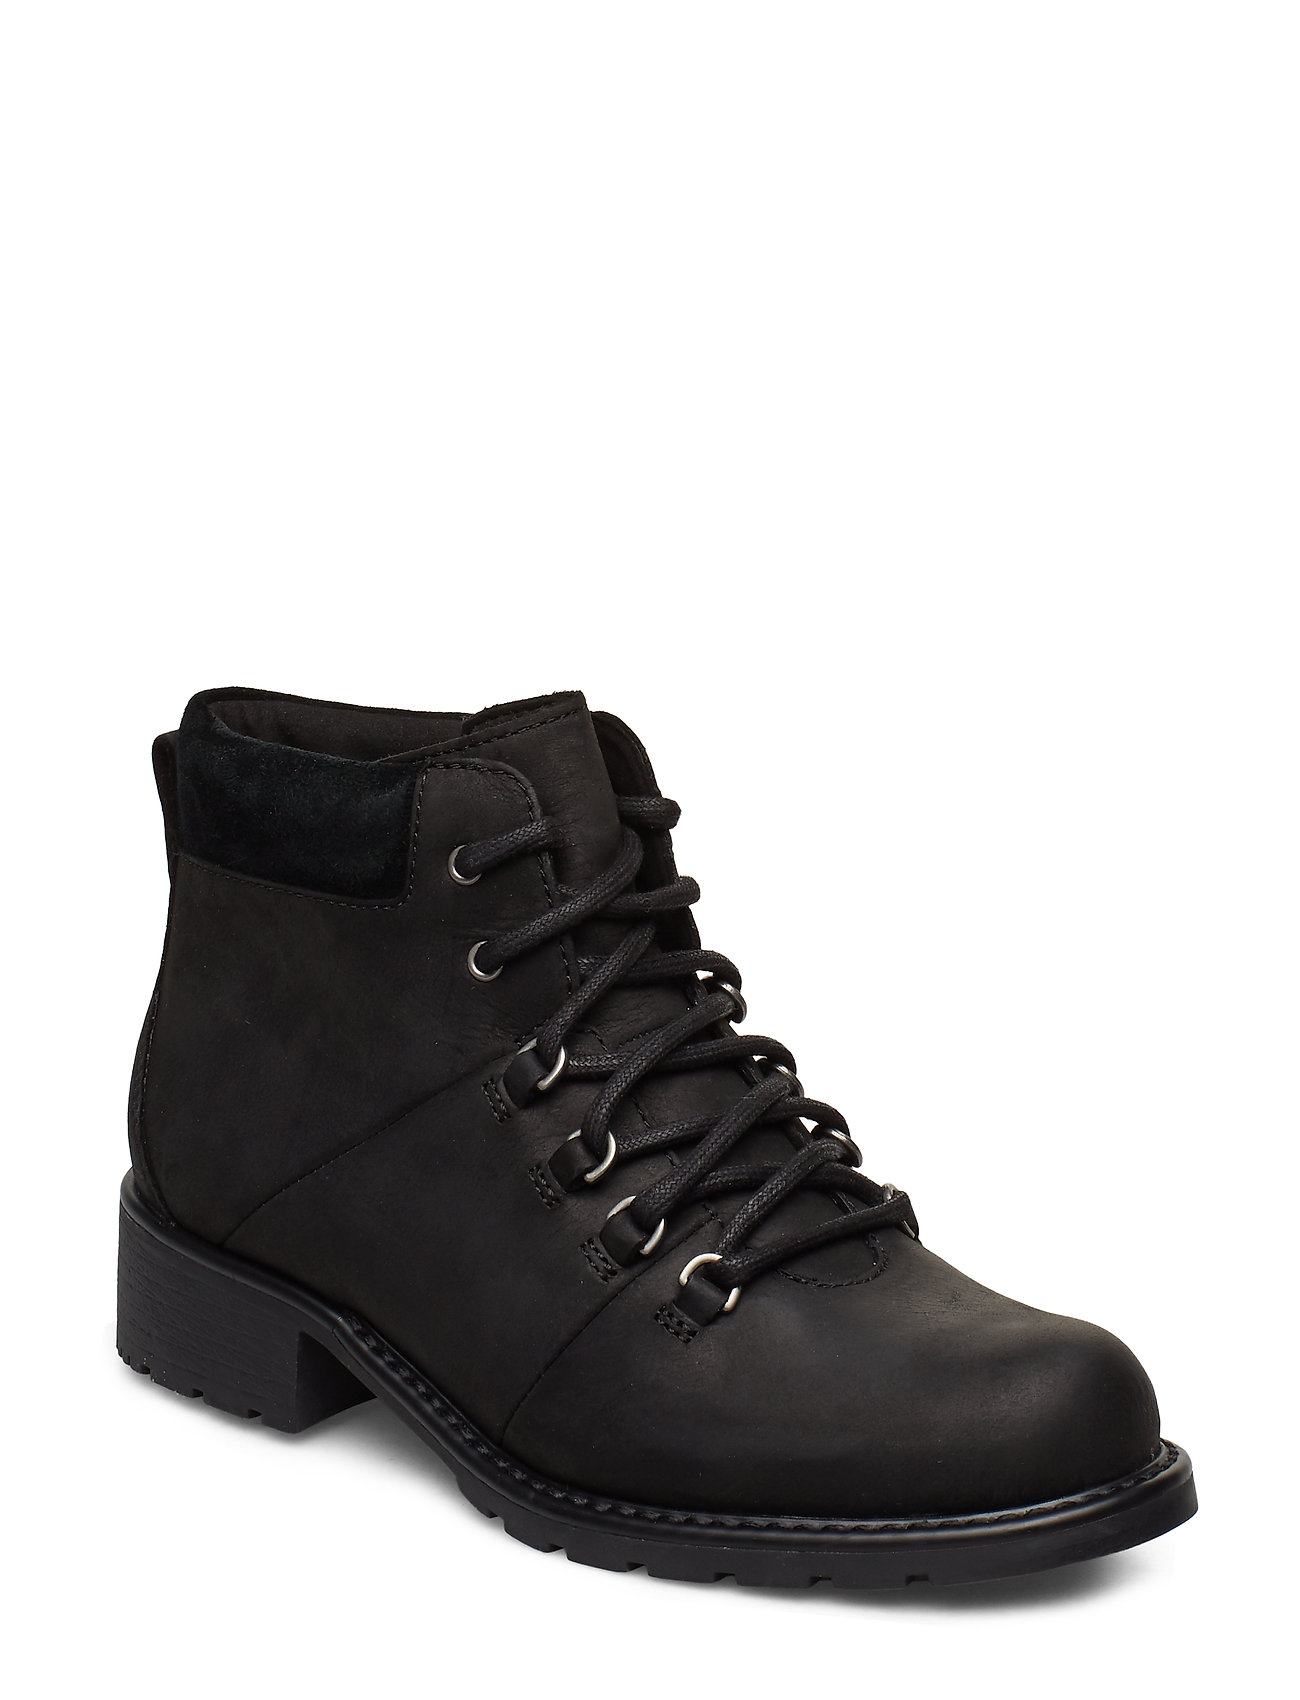 CLARKS Orinoco Demi Shoes Boots Ankle Boots Ankle Boots Flat Heel Schwarz CLARKS